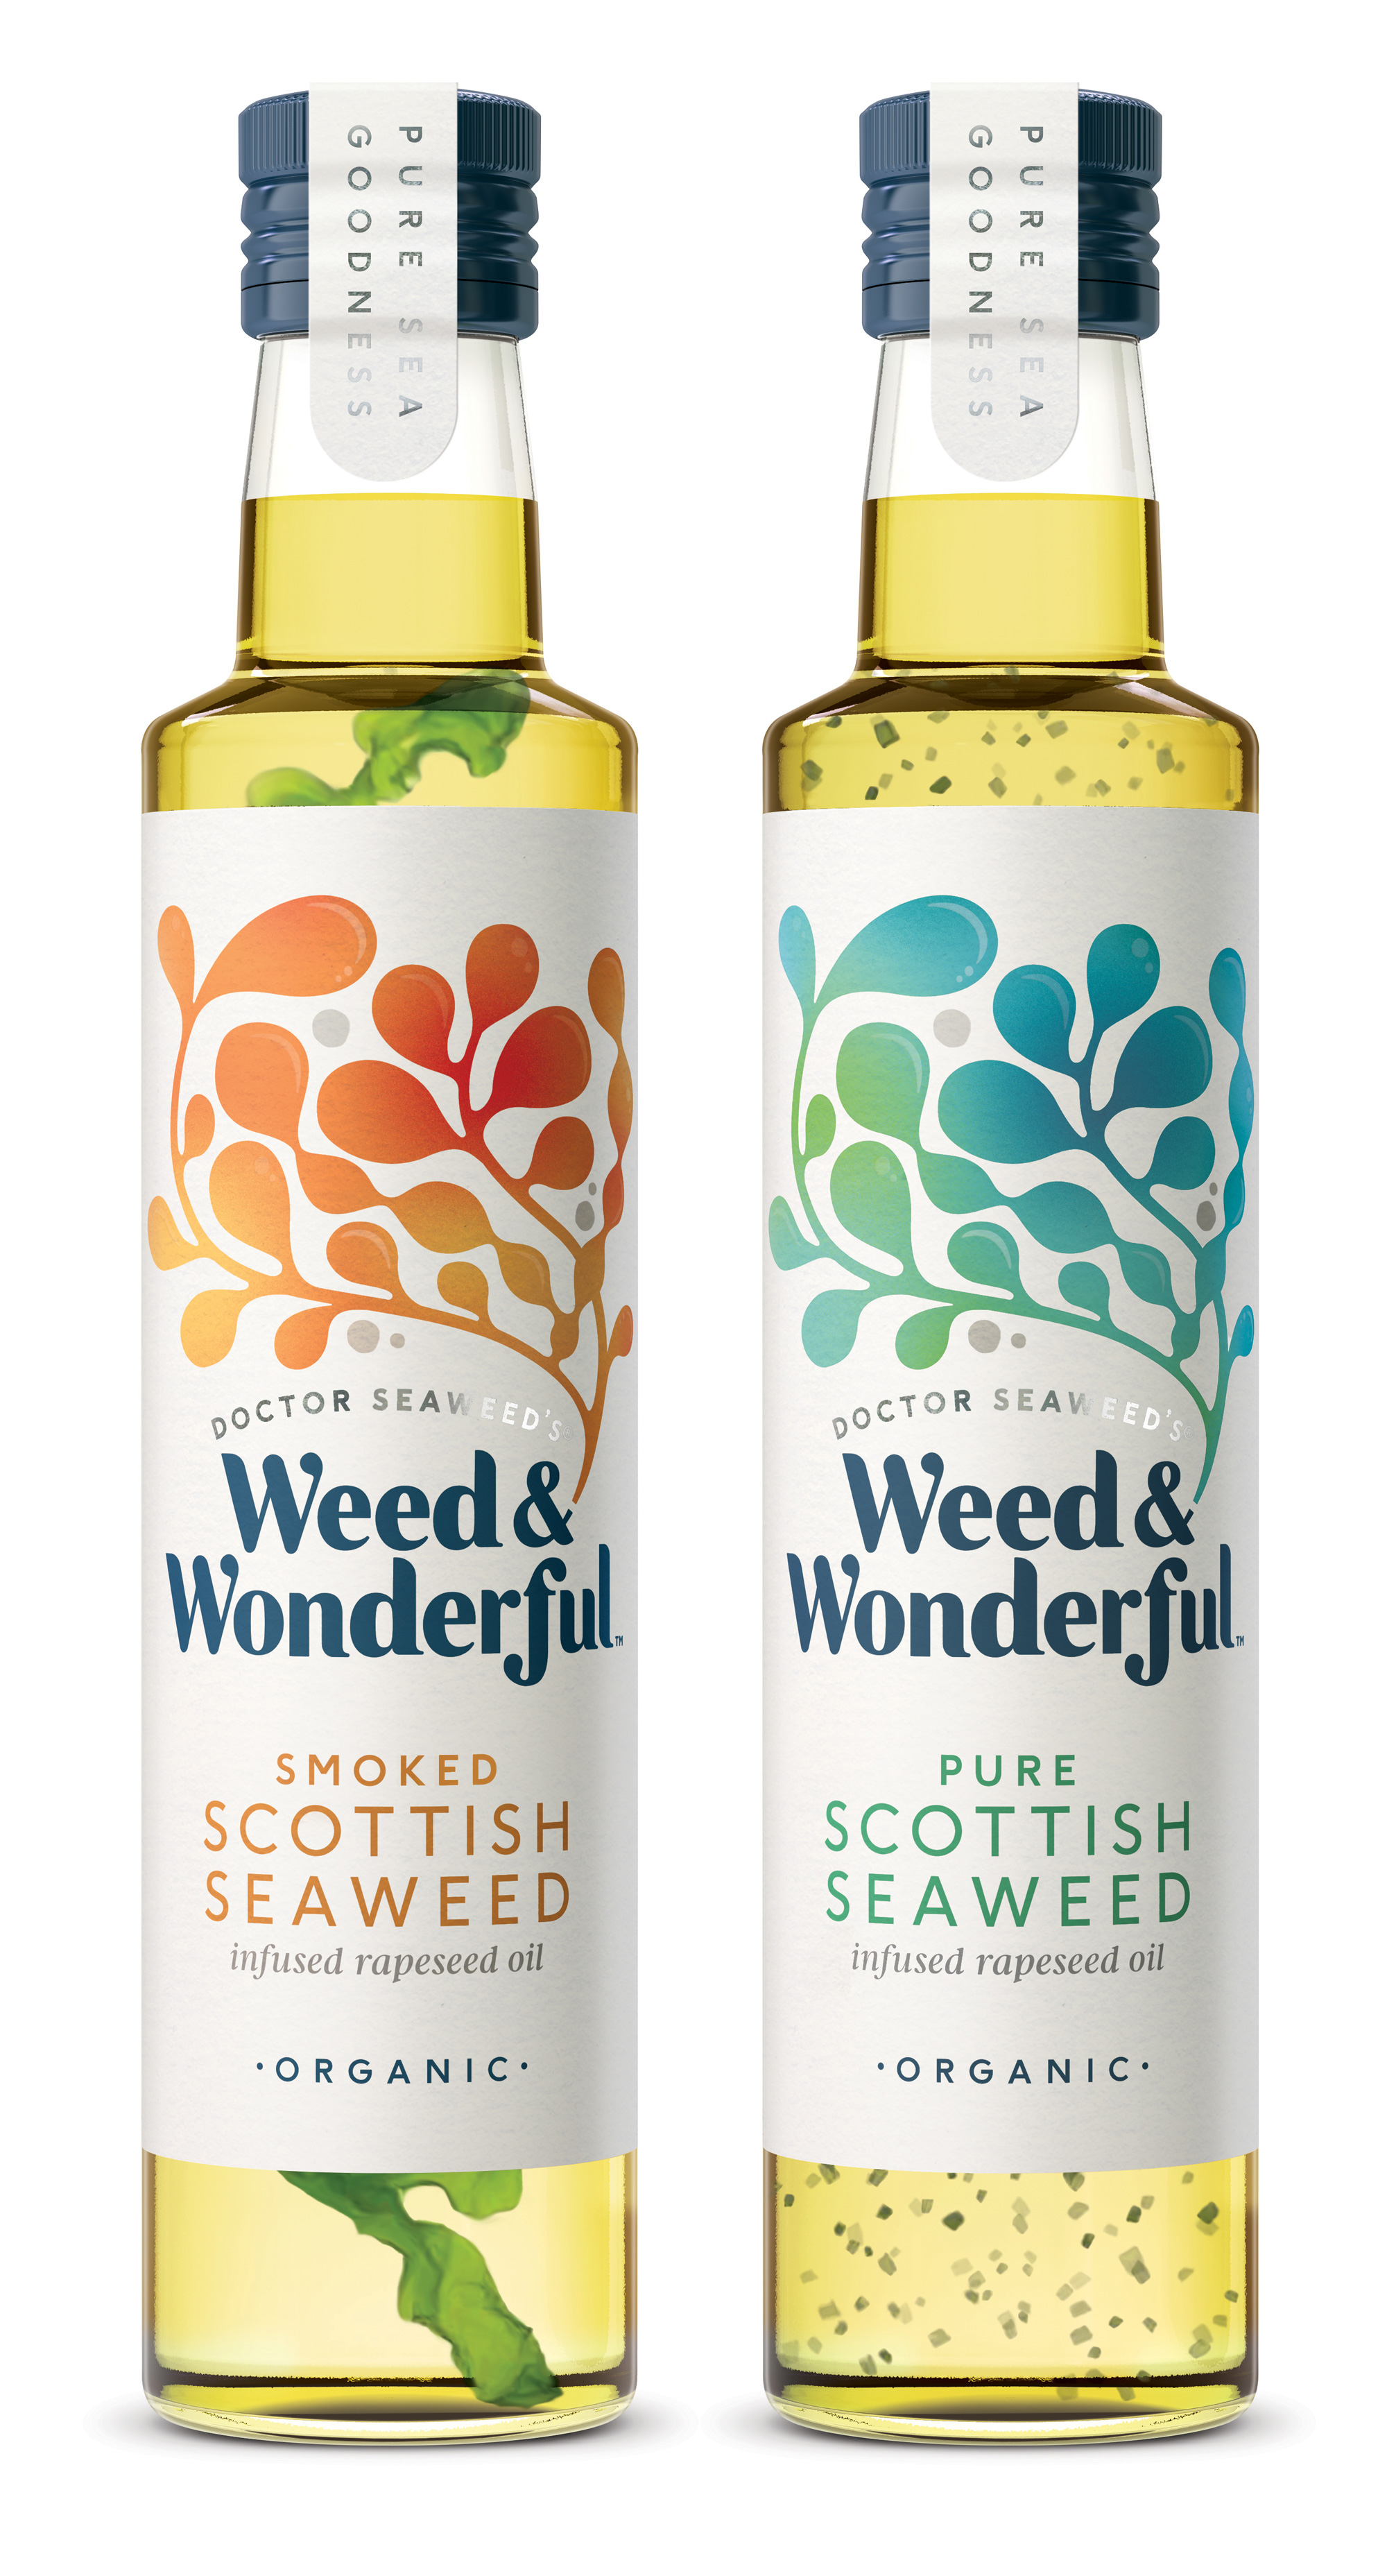 New Logo and Packaging for Weed & Wonderful by Family (and friends)